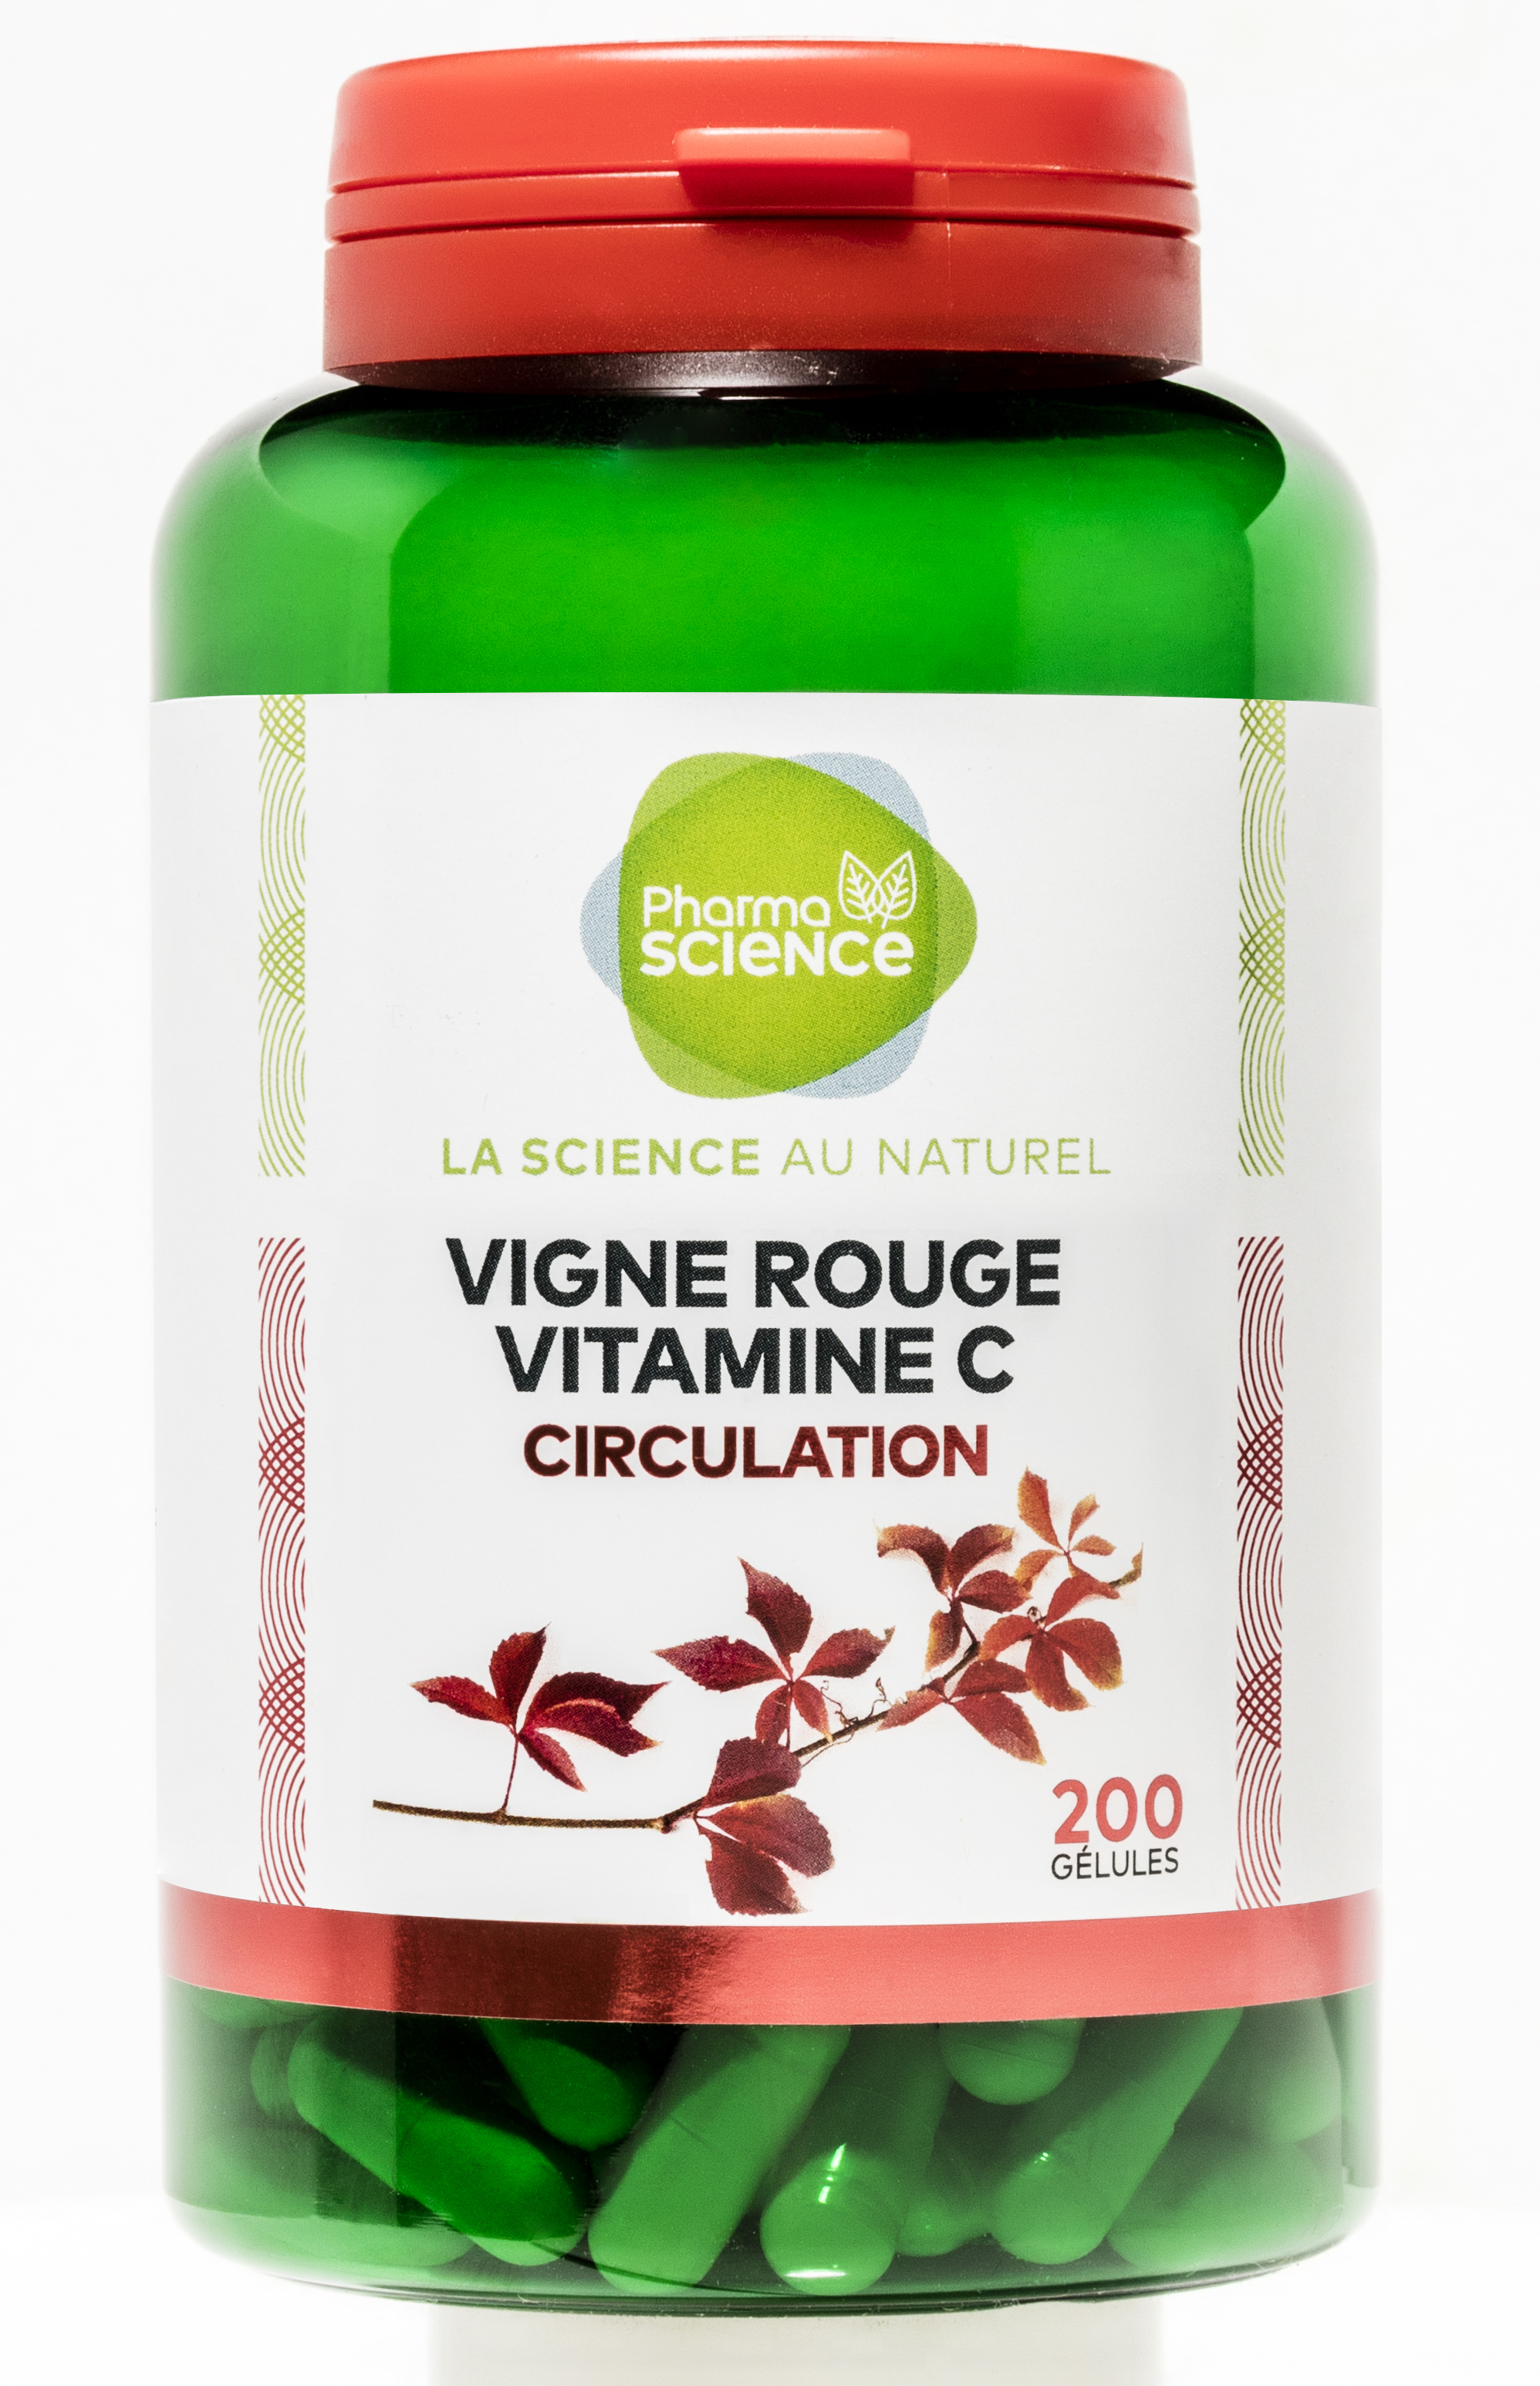 VIGNE ROUGE / VITAMINE C CIRUCULATION